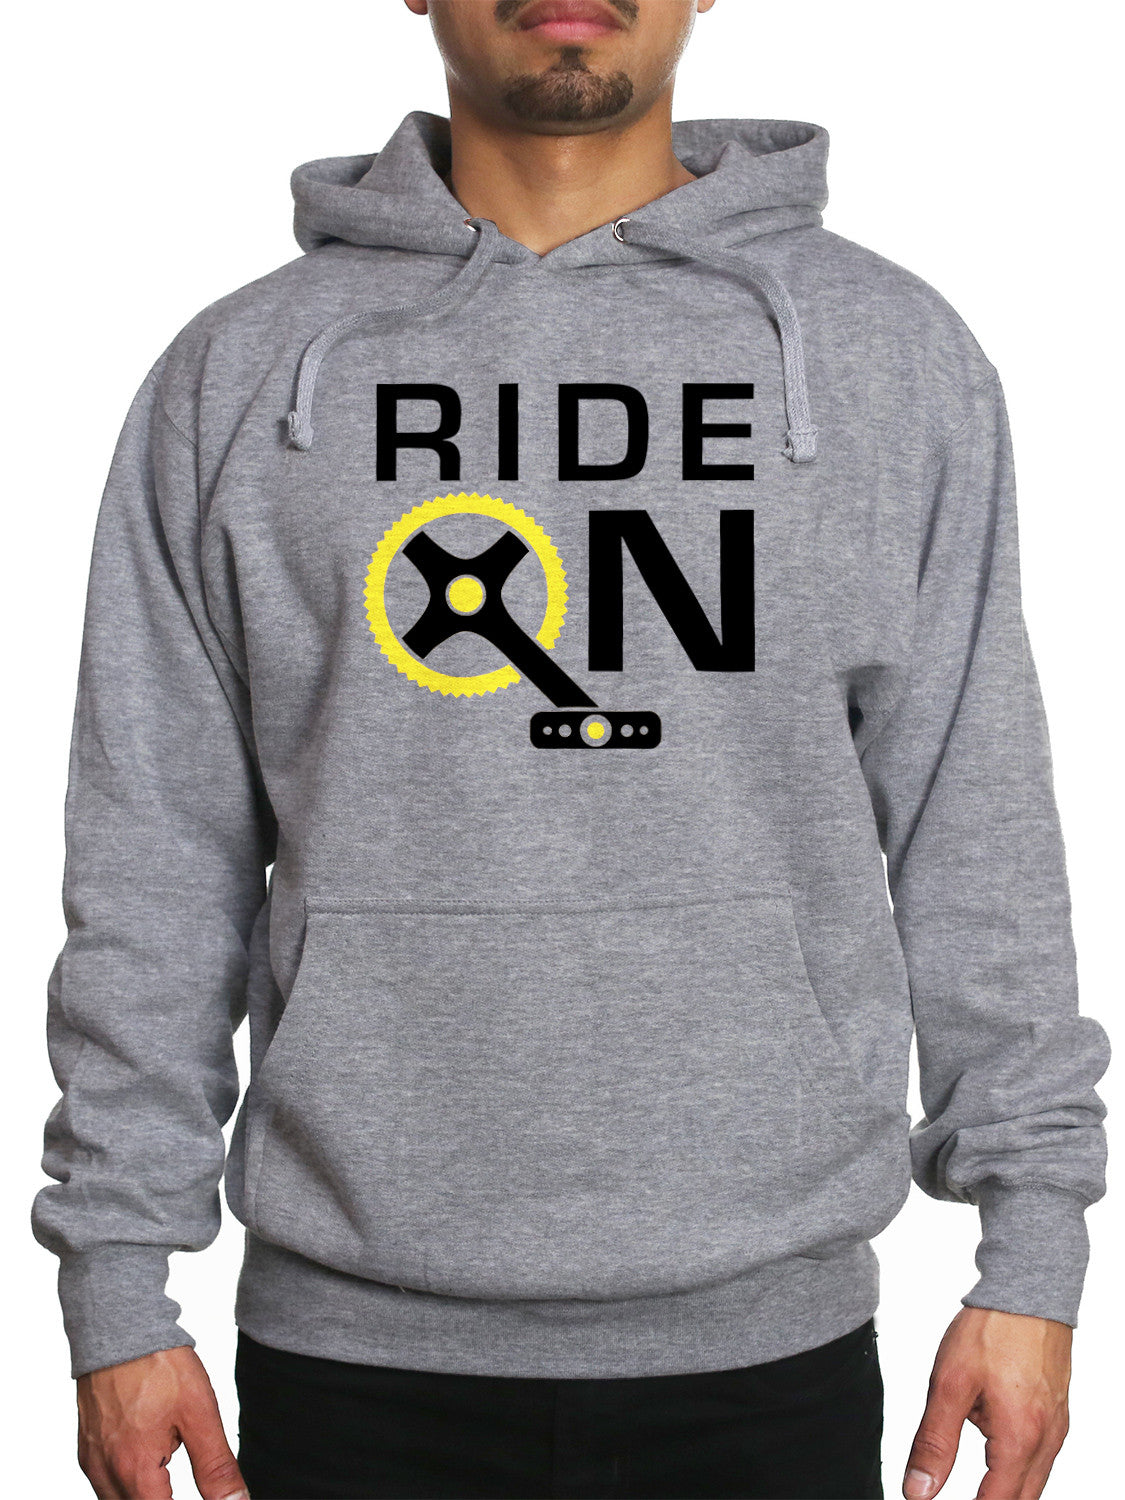 RIDE ON CYCLIST